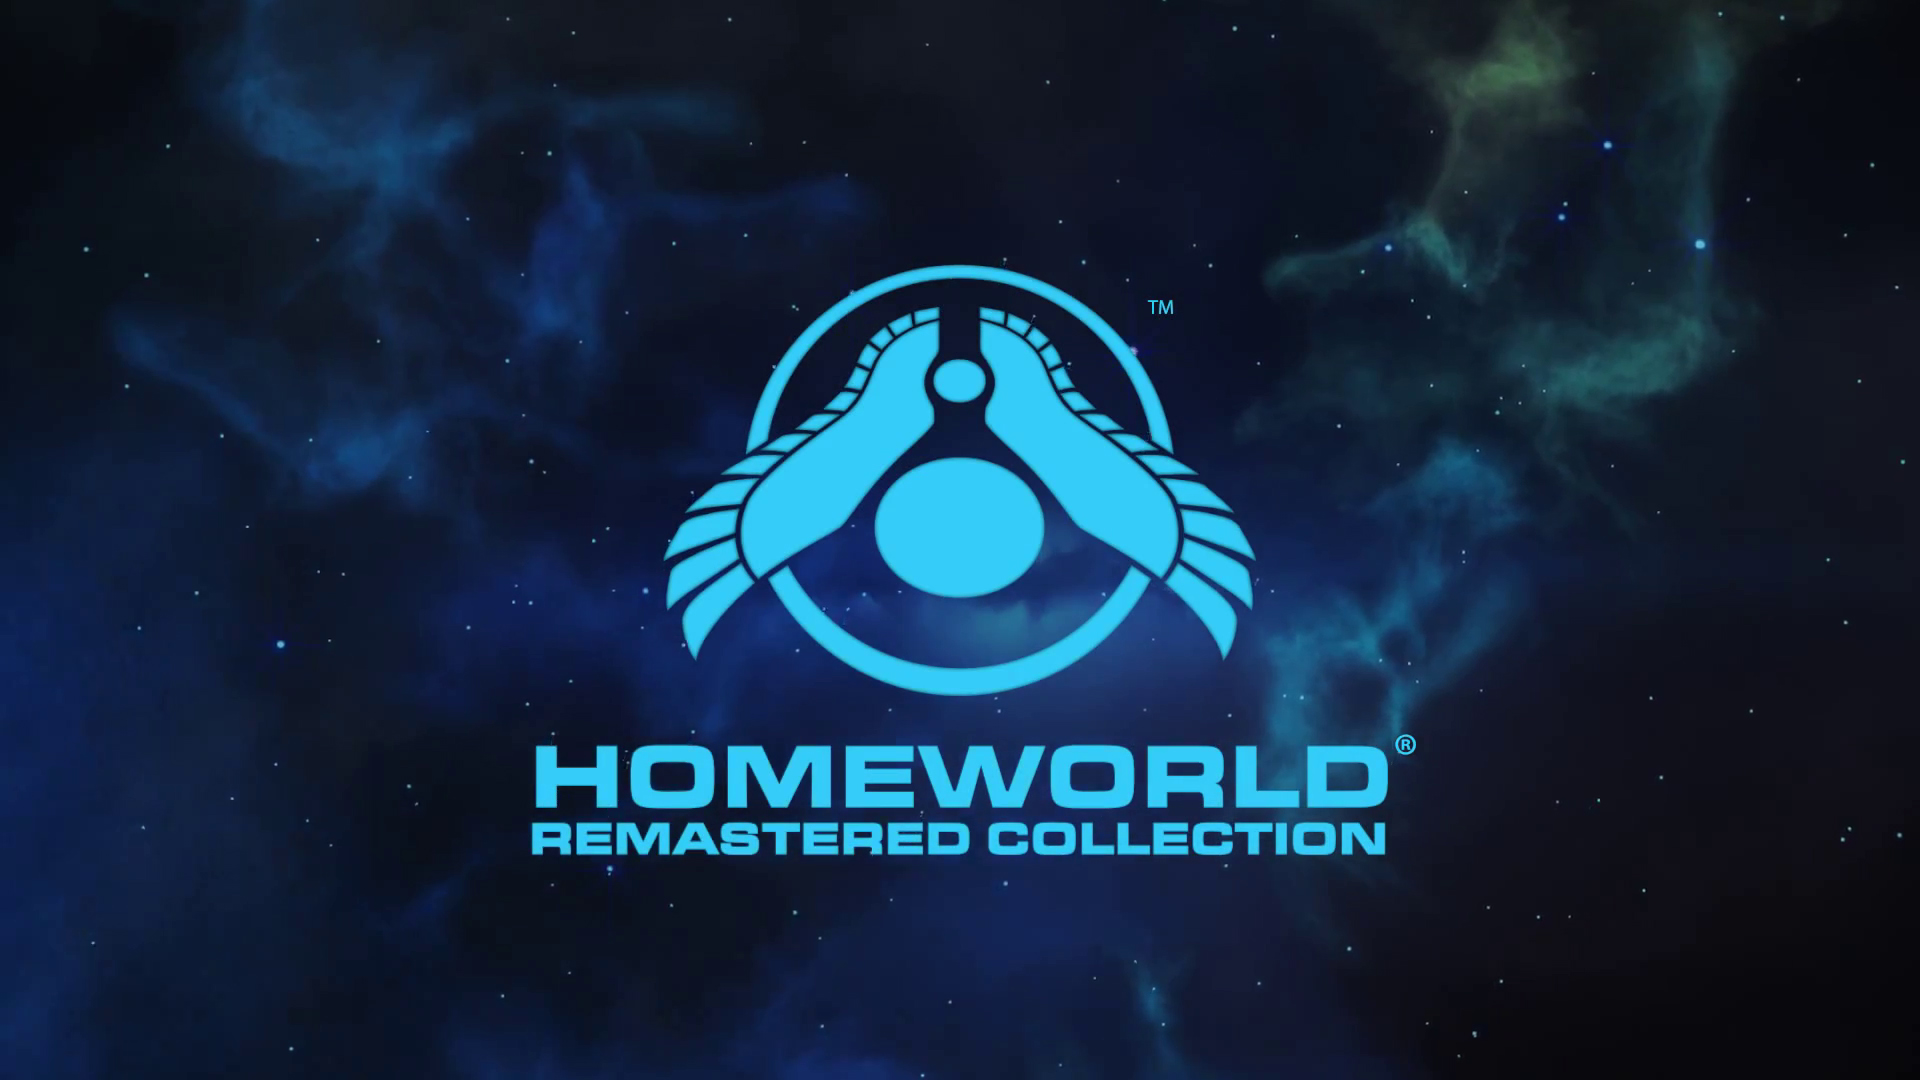 homeworld-remastered-collection-logo